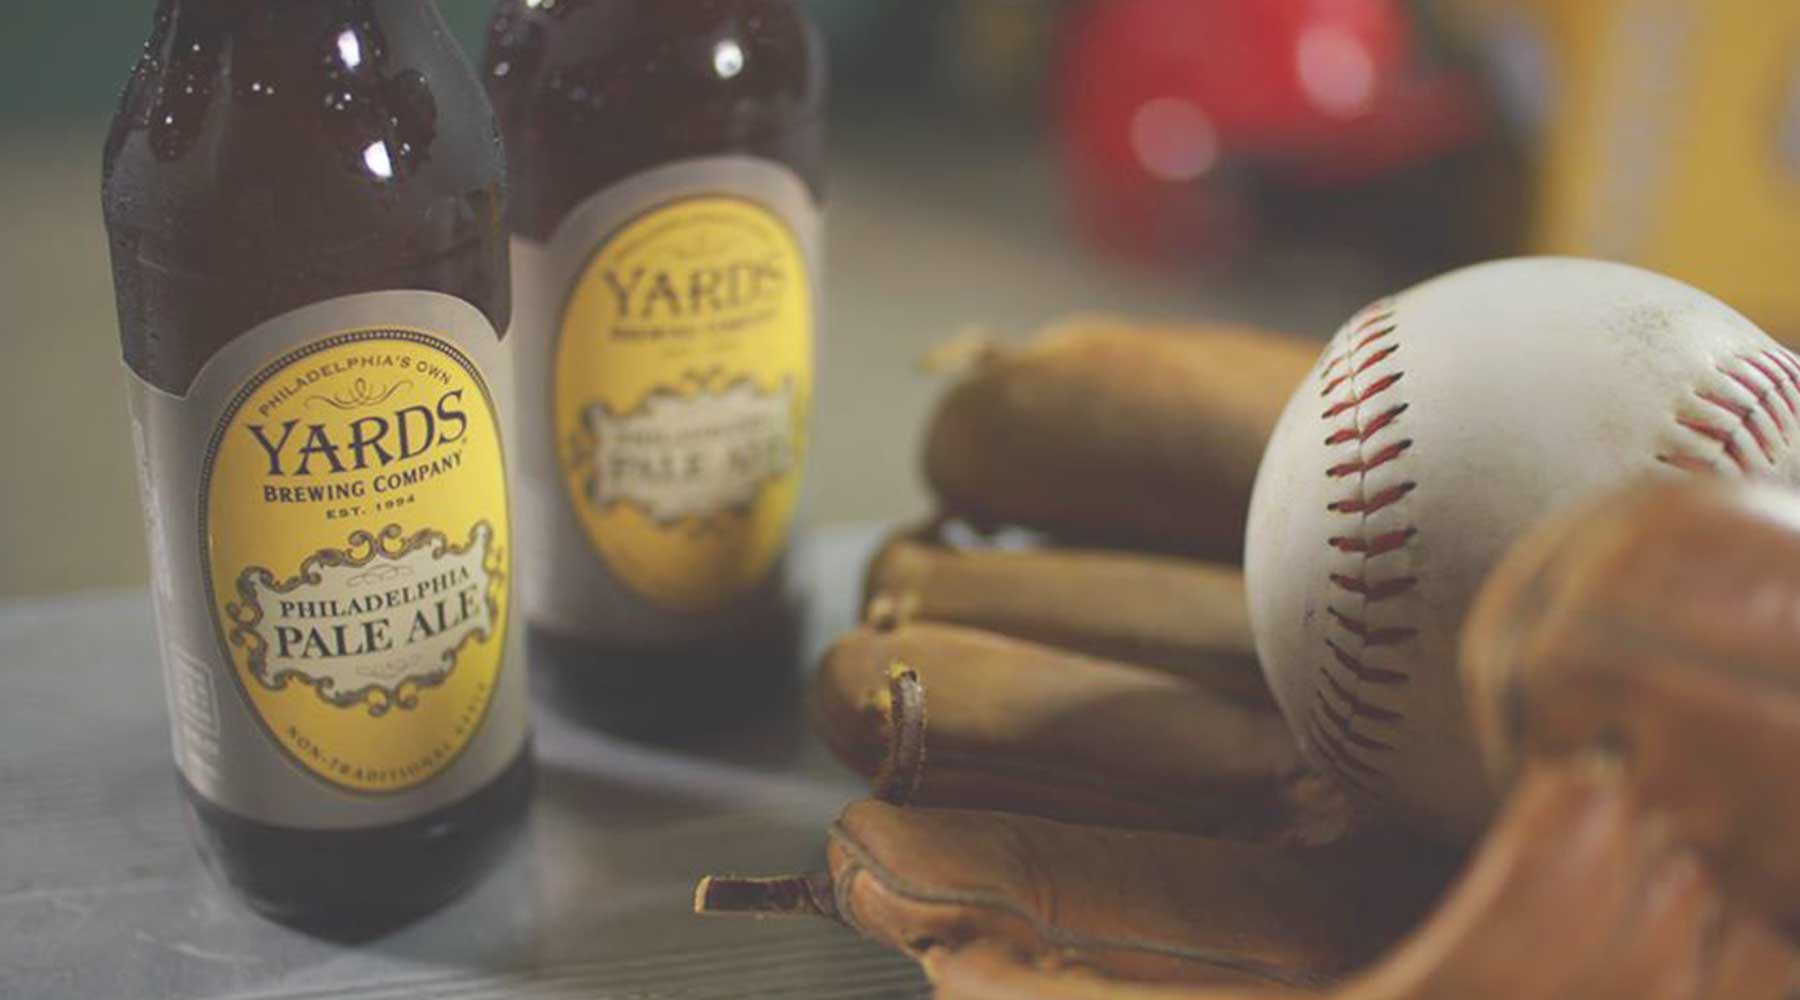 Yards Brewing Company | Just Wine